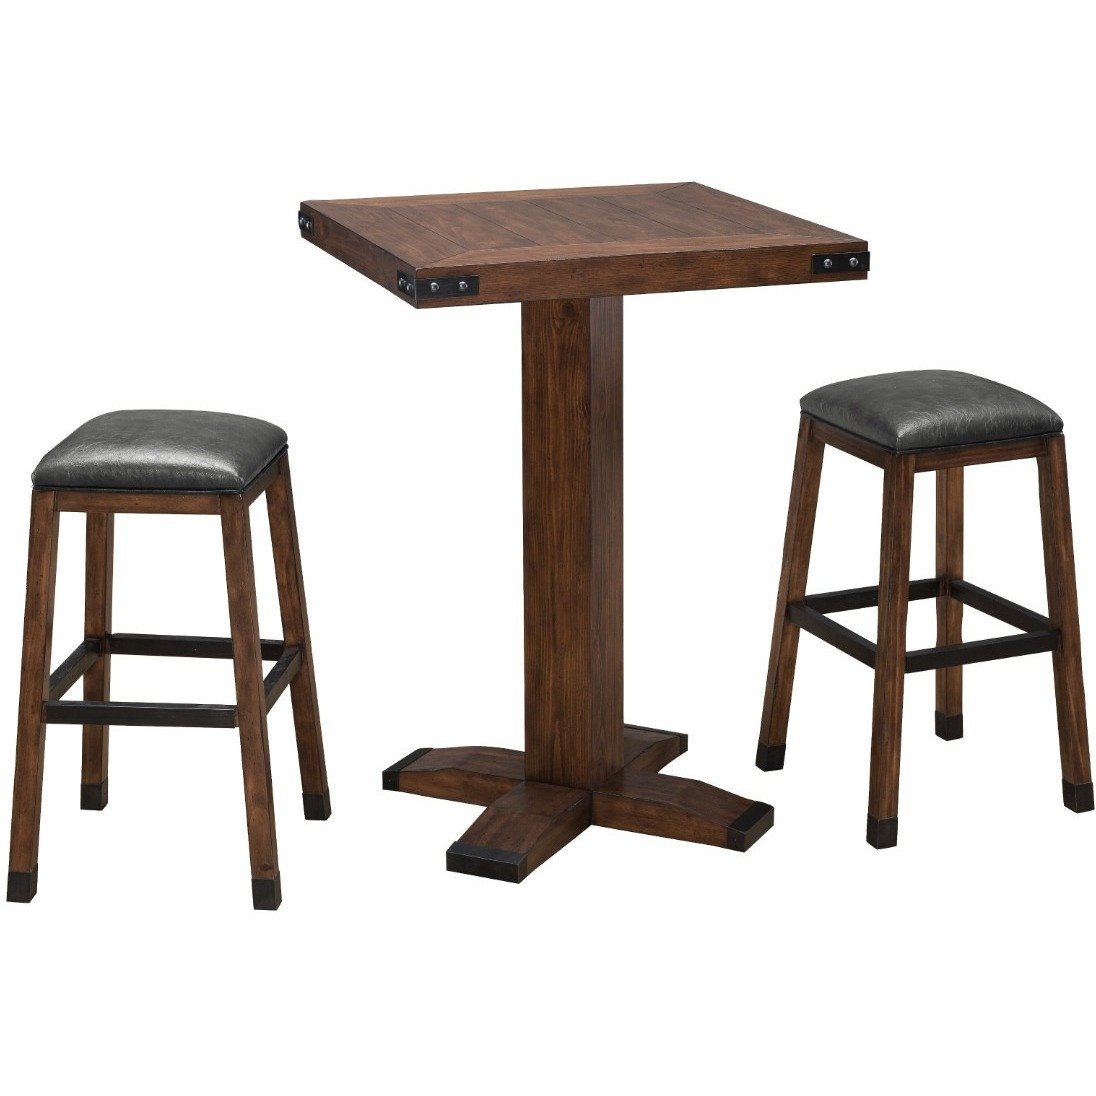 Signature rustic pub table stools and pub tables legacy danny veghs